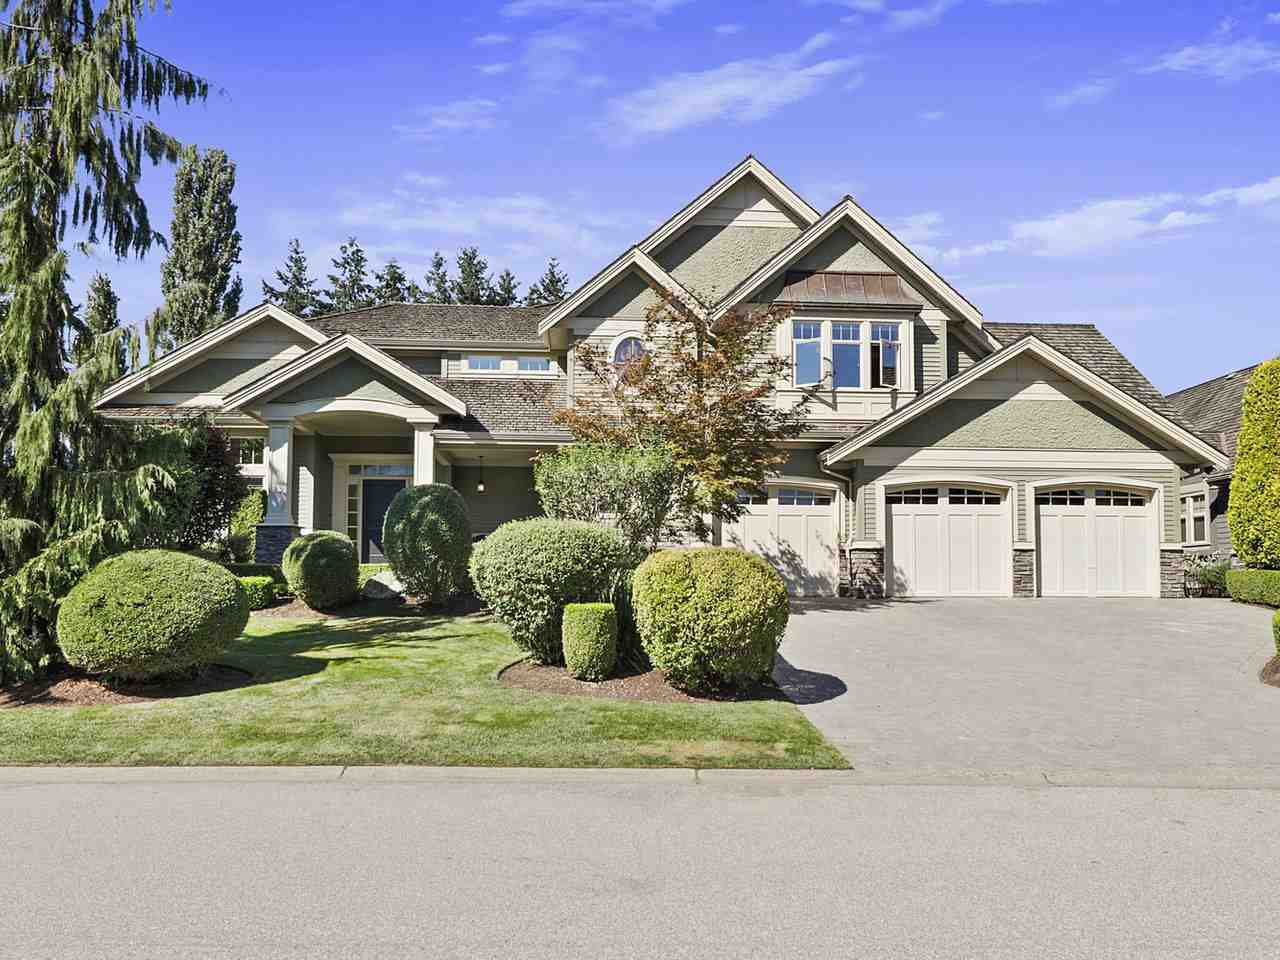 Main Photo: 15845 39A Ave in South Surrey: Morgan Creek House for sale (South Surrey White Rock)  : MLS®# R2493602